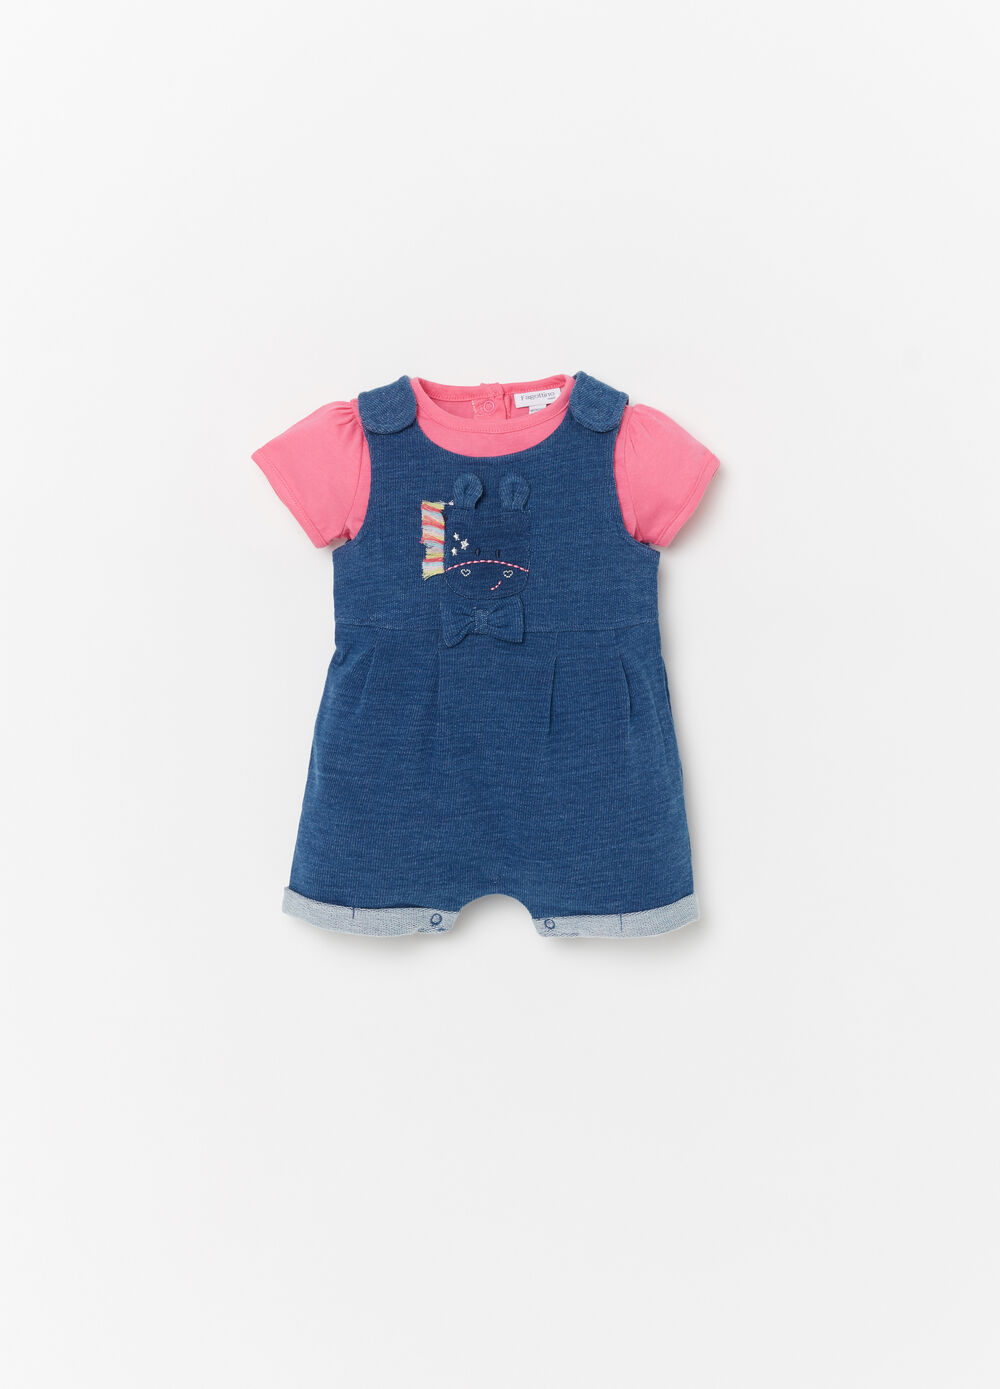 T-shirt and romper set with embroidery and diamantés